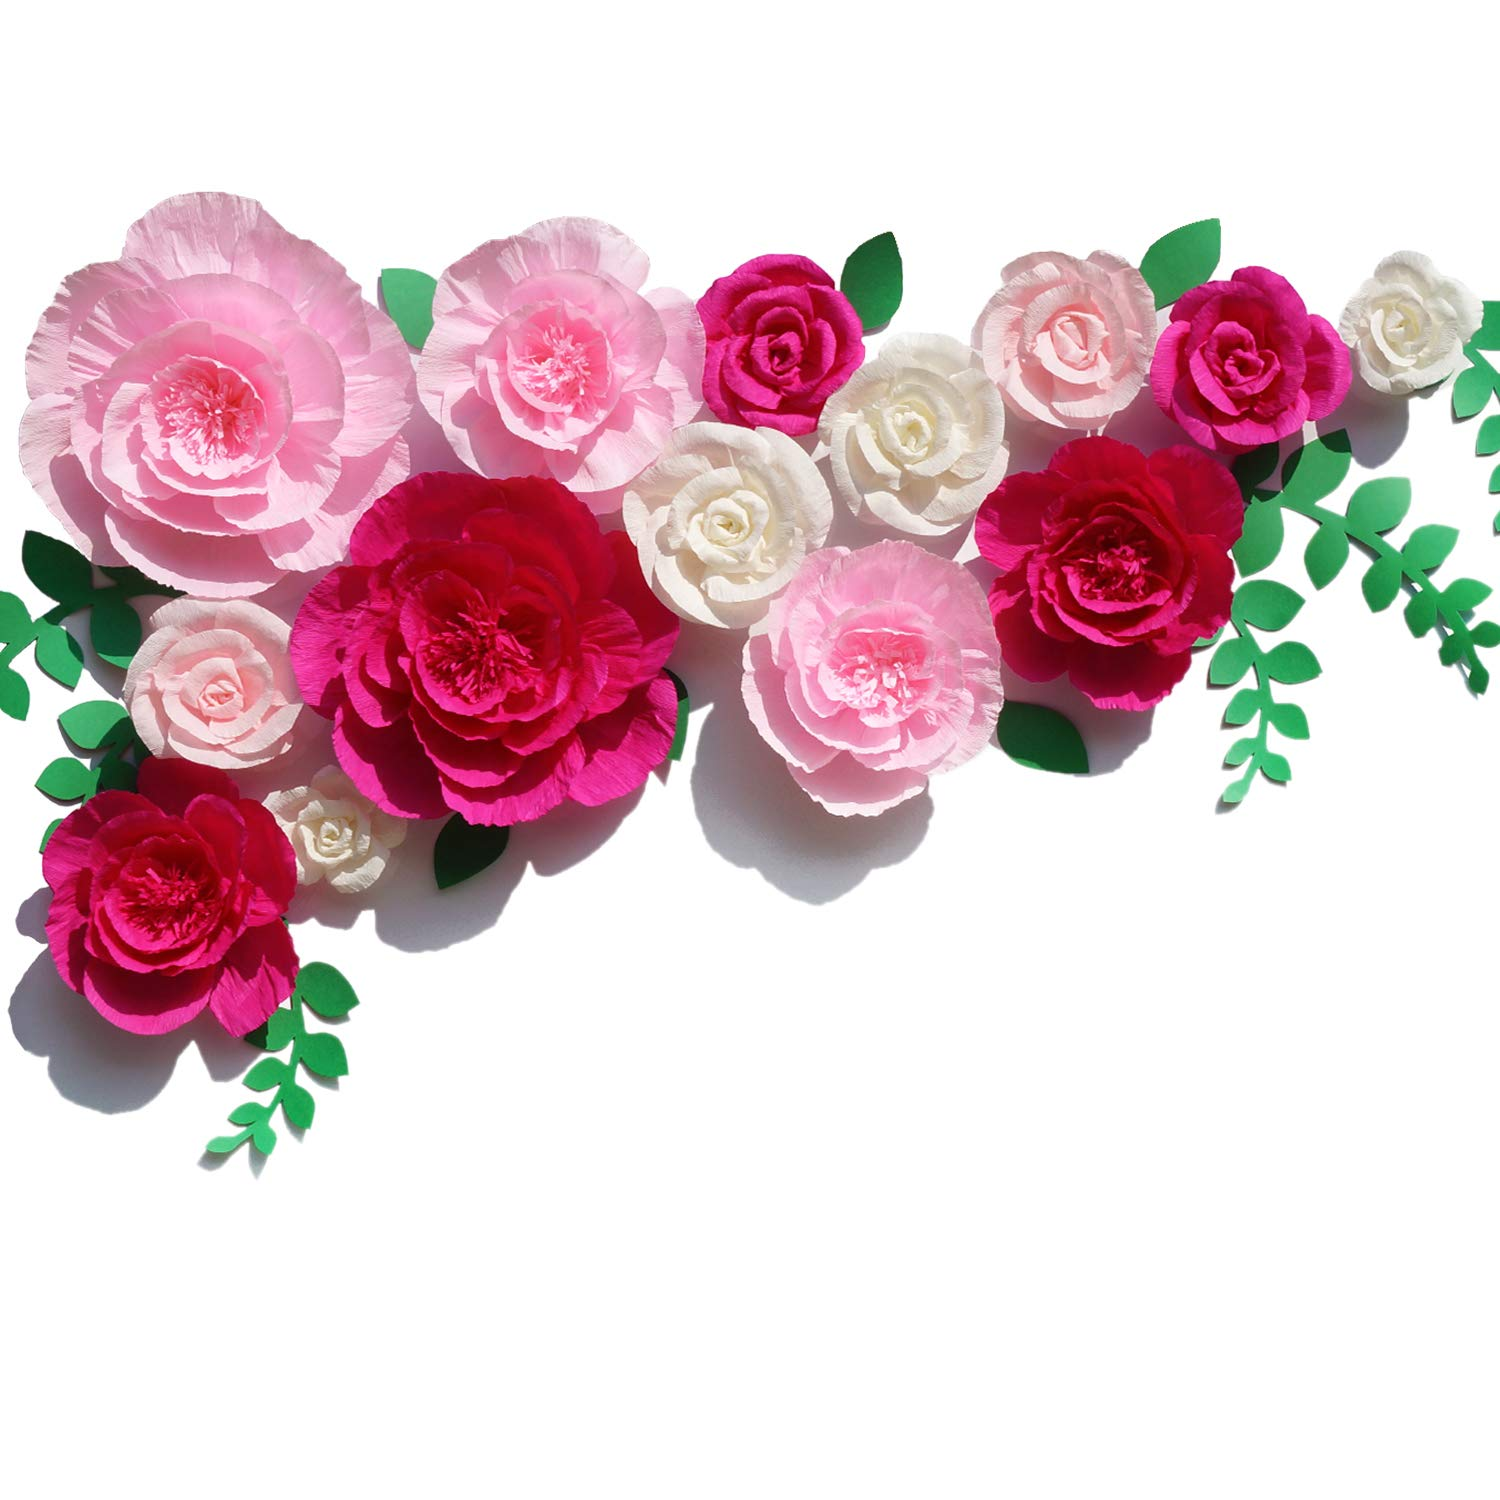 Letjolt Giant Crepe Paper Flowers Wedding Ornaments Backdrop Paper Peony Handcrafted Rose for Baby Shower Birthday Bridal Shower (Rose Pink White 14Pcs)